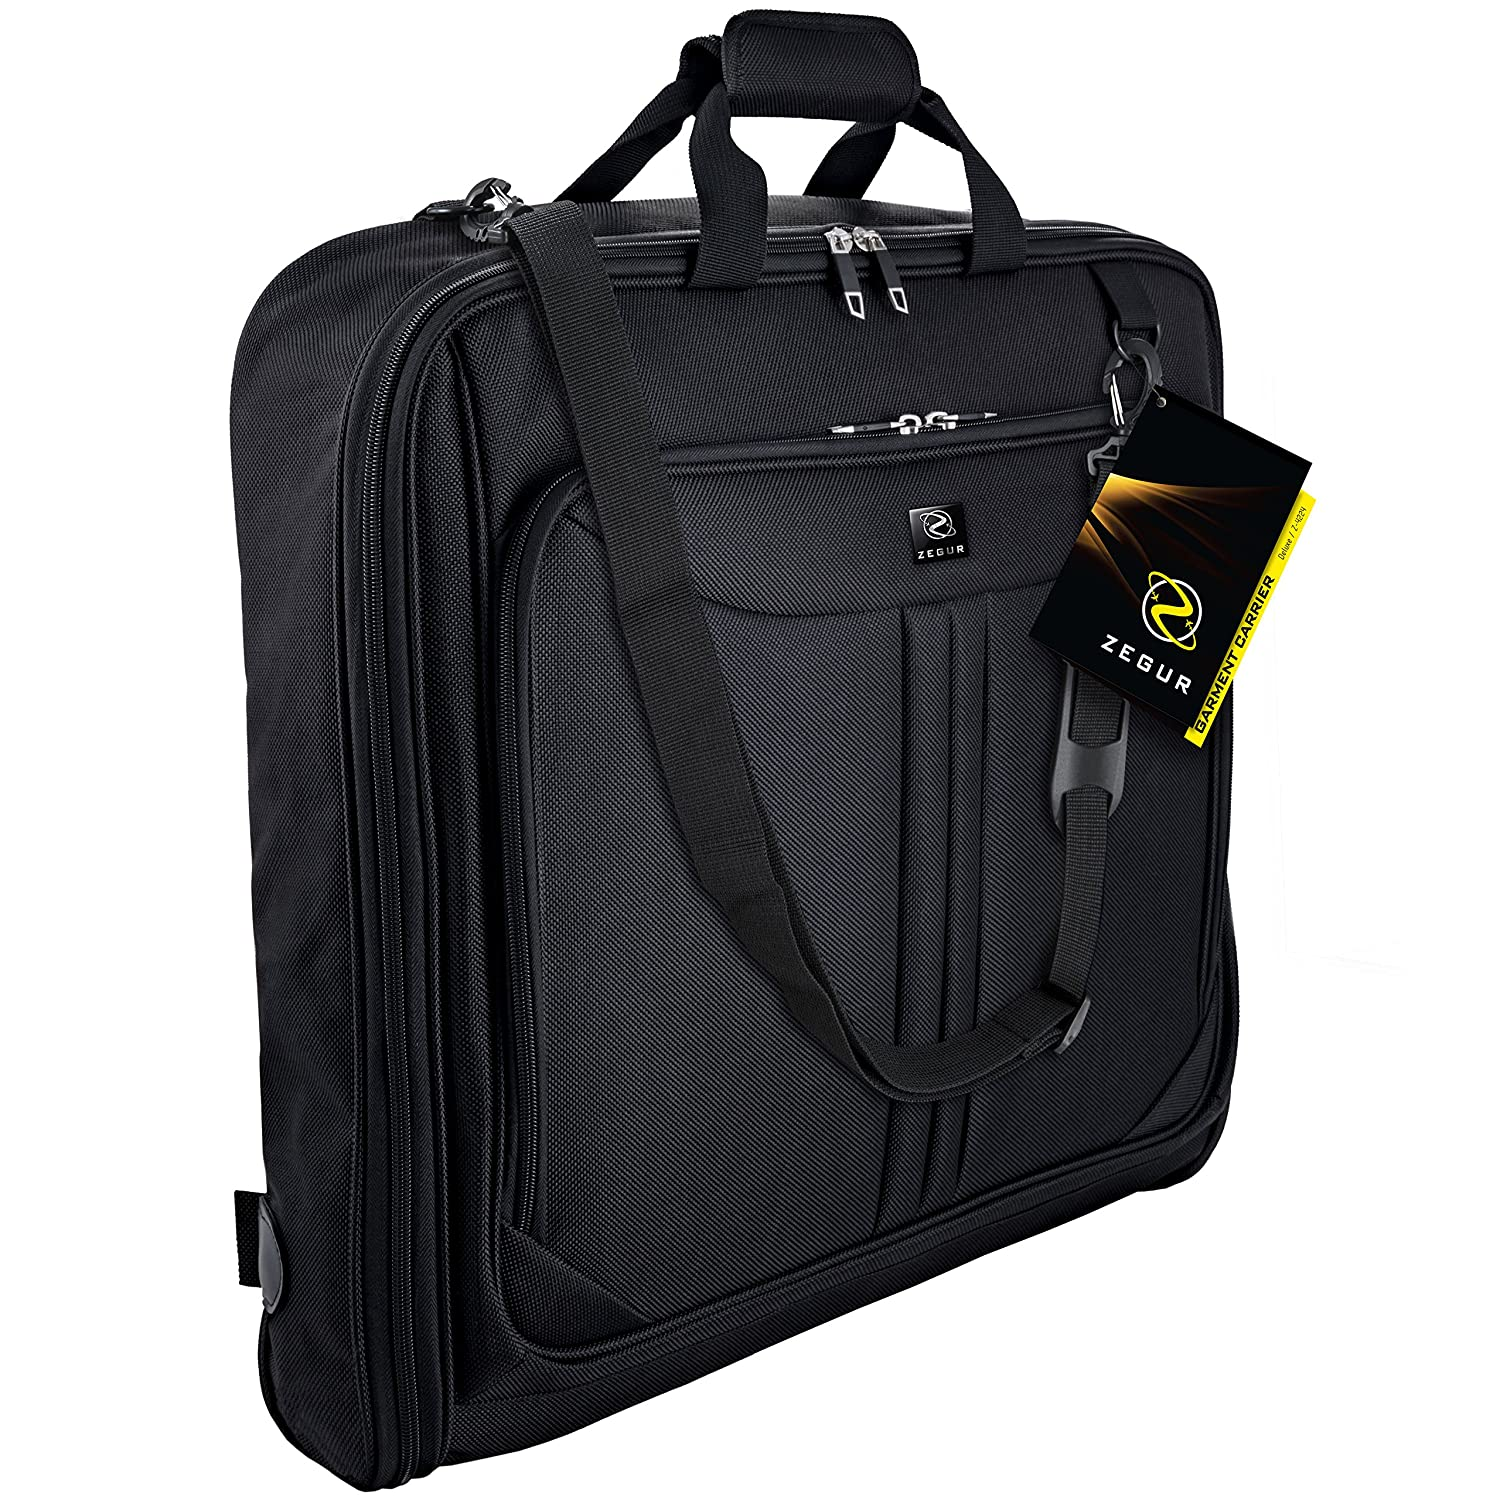 b7861be007e2 ZEGUR Suit Carry On Garment Bag for Travel & Business Trips With Shoulder  Strap (Black)